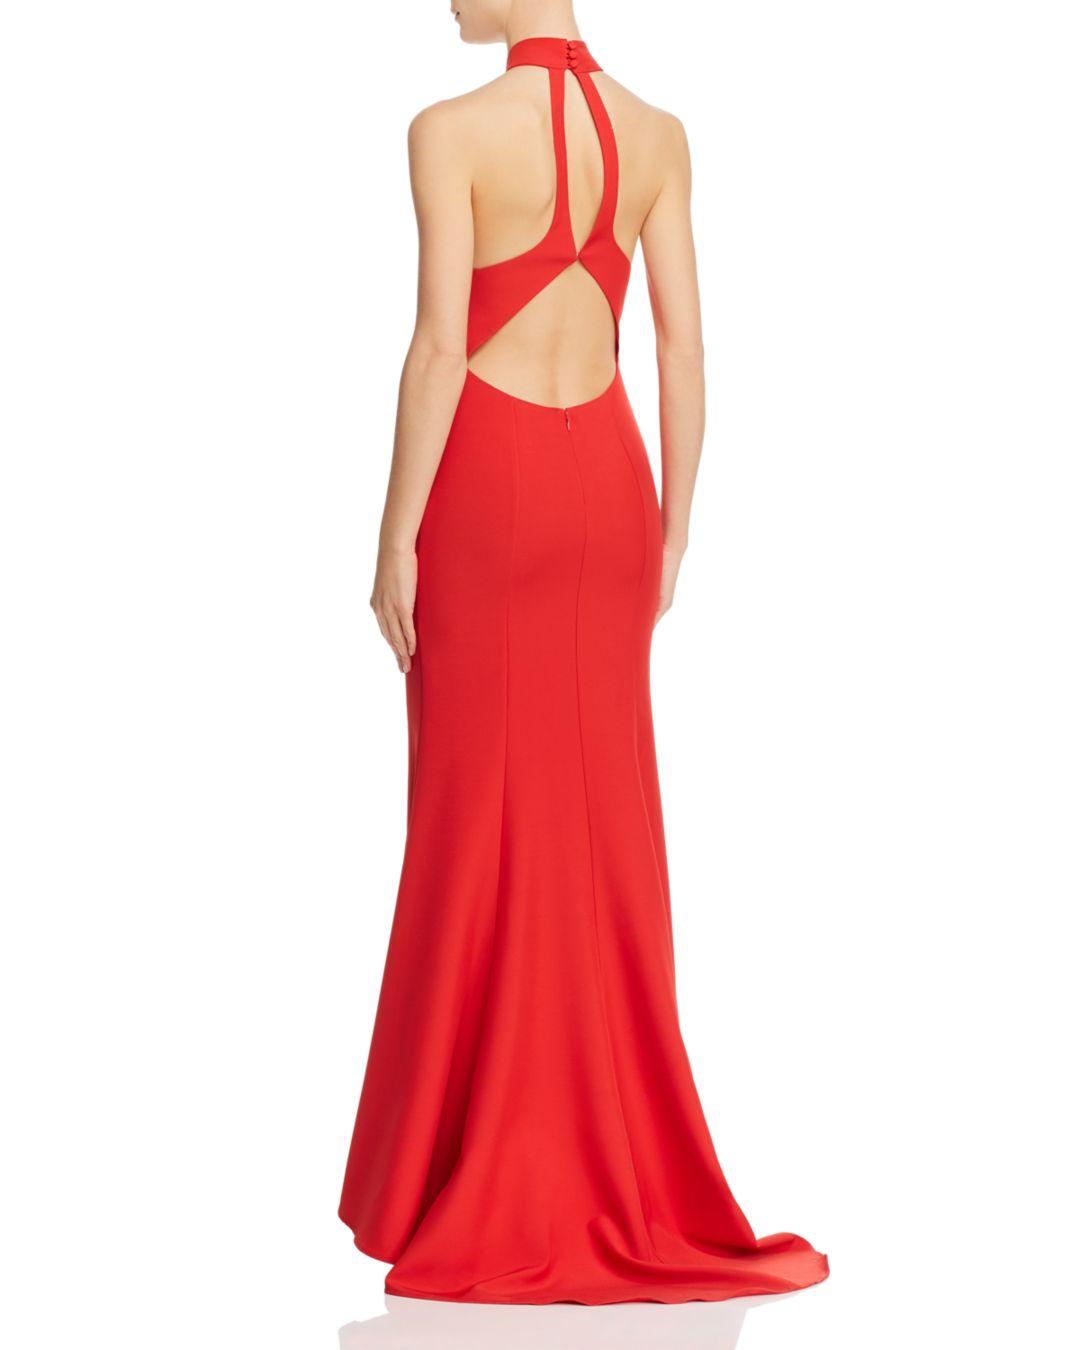 247aff8358c9 Lyst - Jarlo Tilly Halter Gown in Red